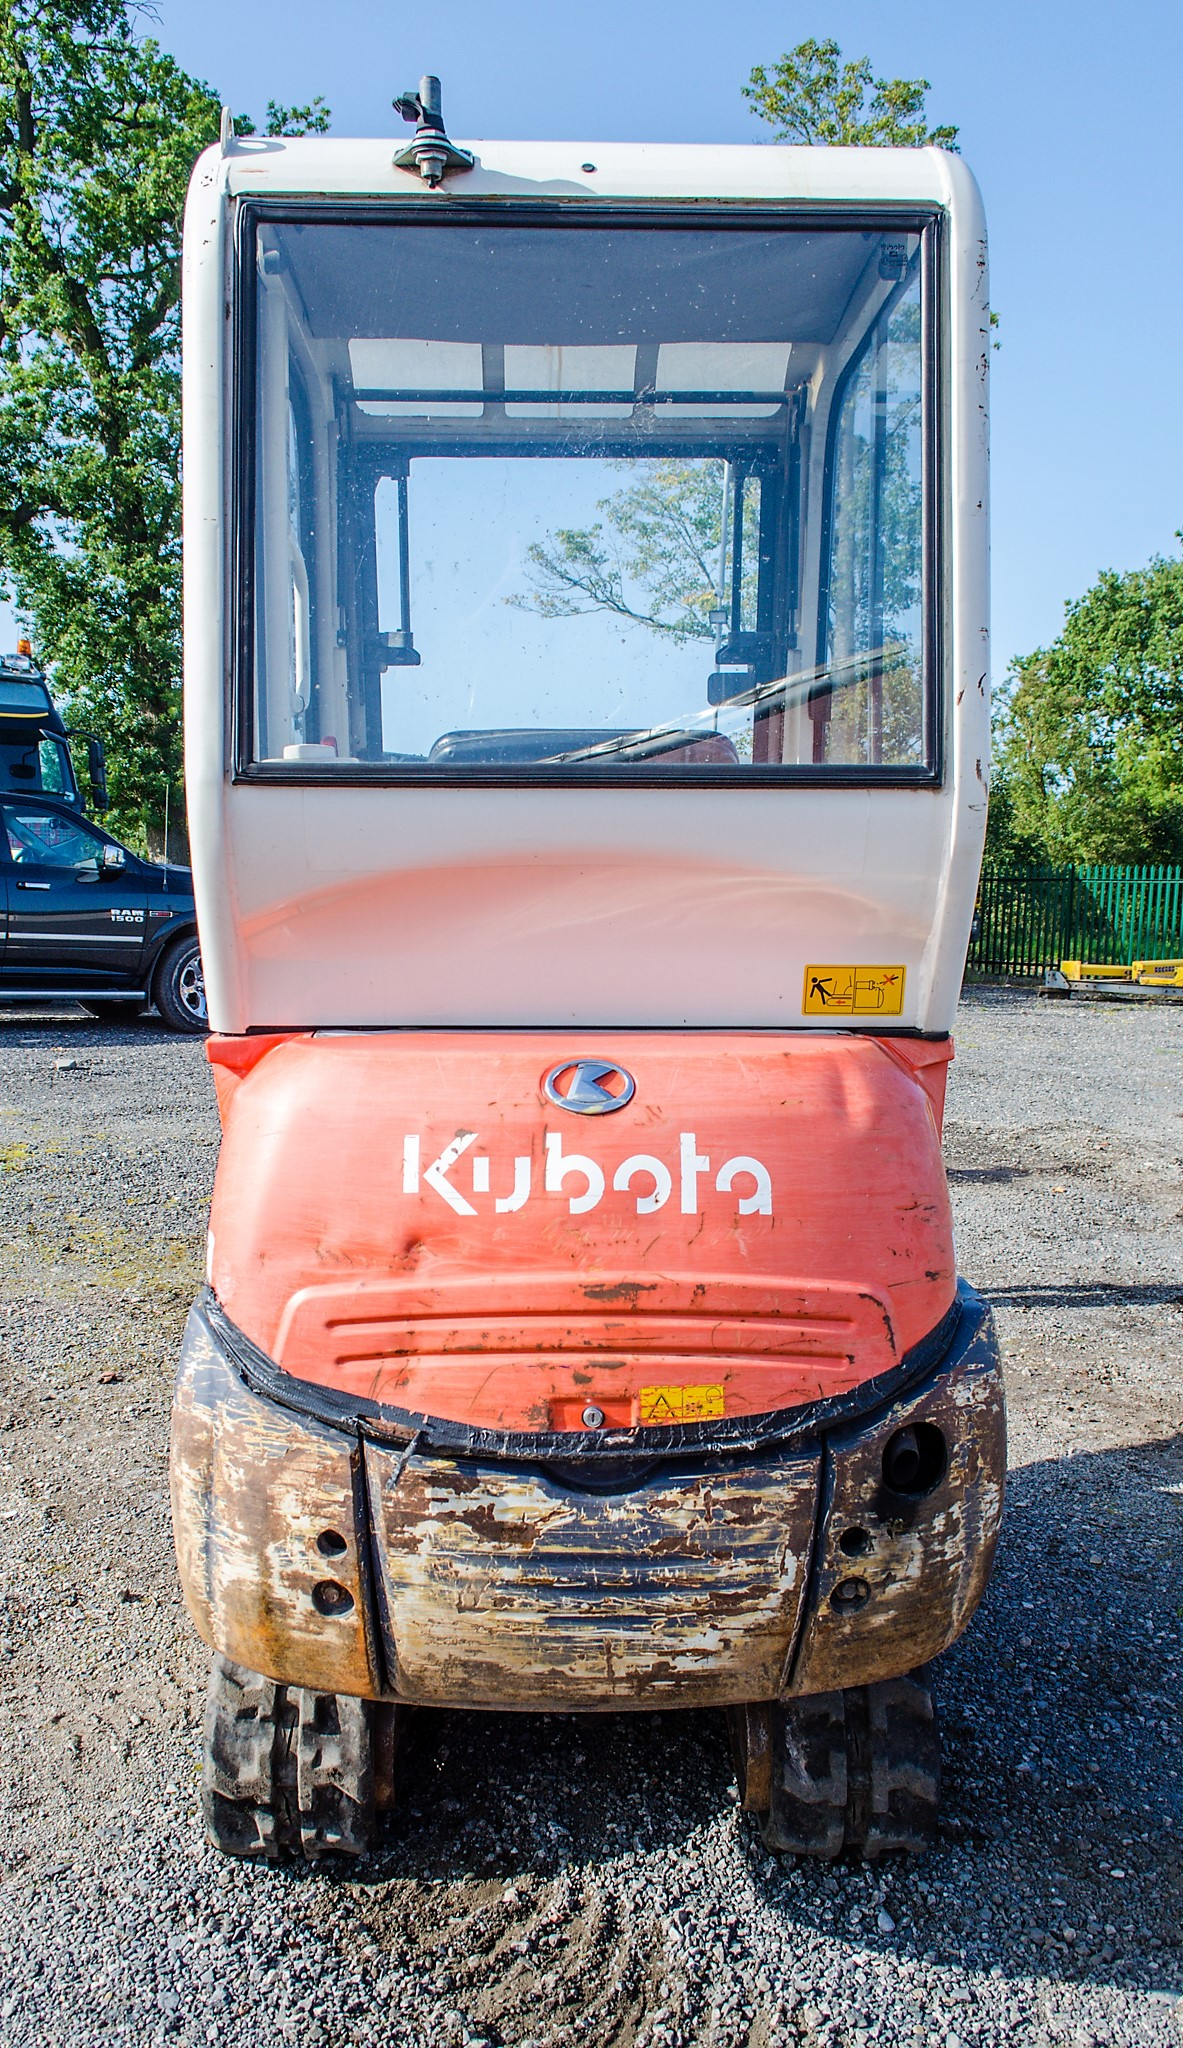 Kubota KX36-3 1.5 tonne rubber tracked mini excavator Year: 2007 S/N: Z077298 Recorded Hours: 4205 - Image 6 of 18